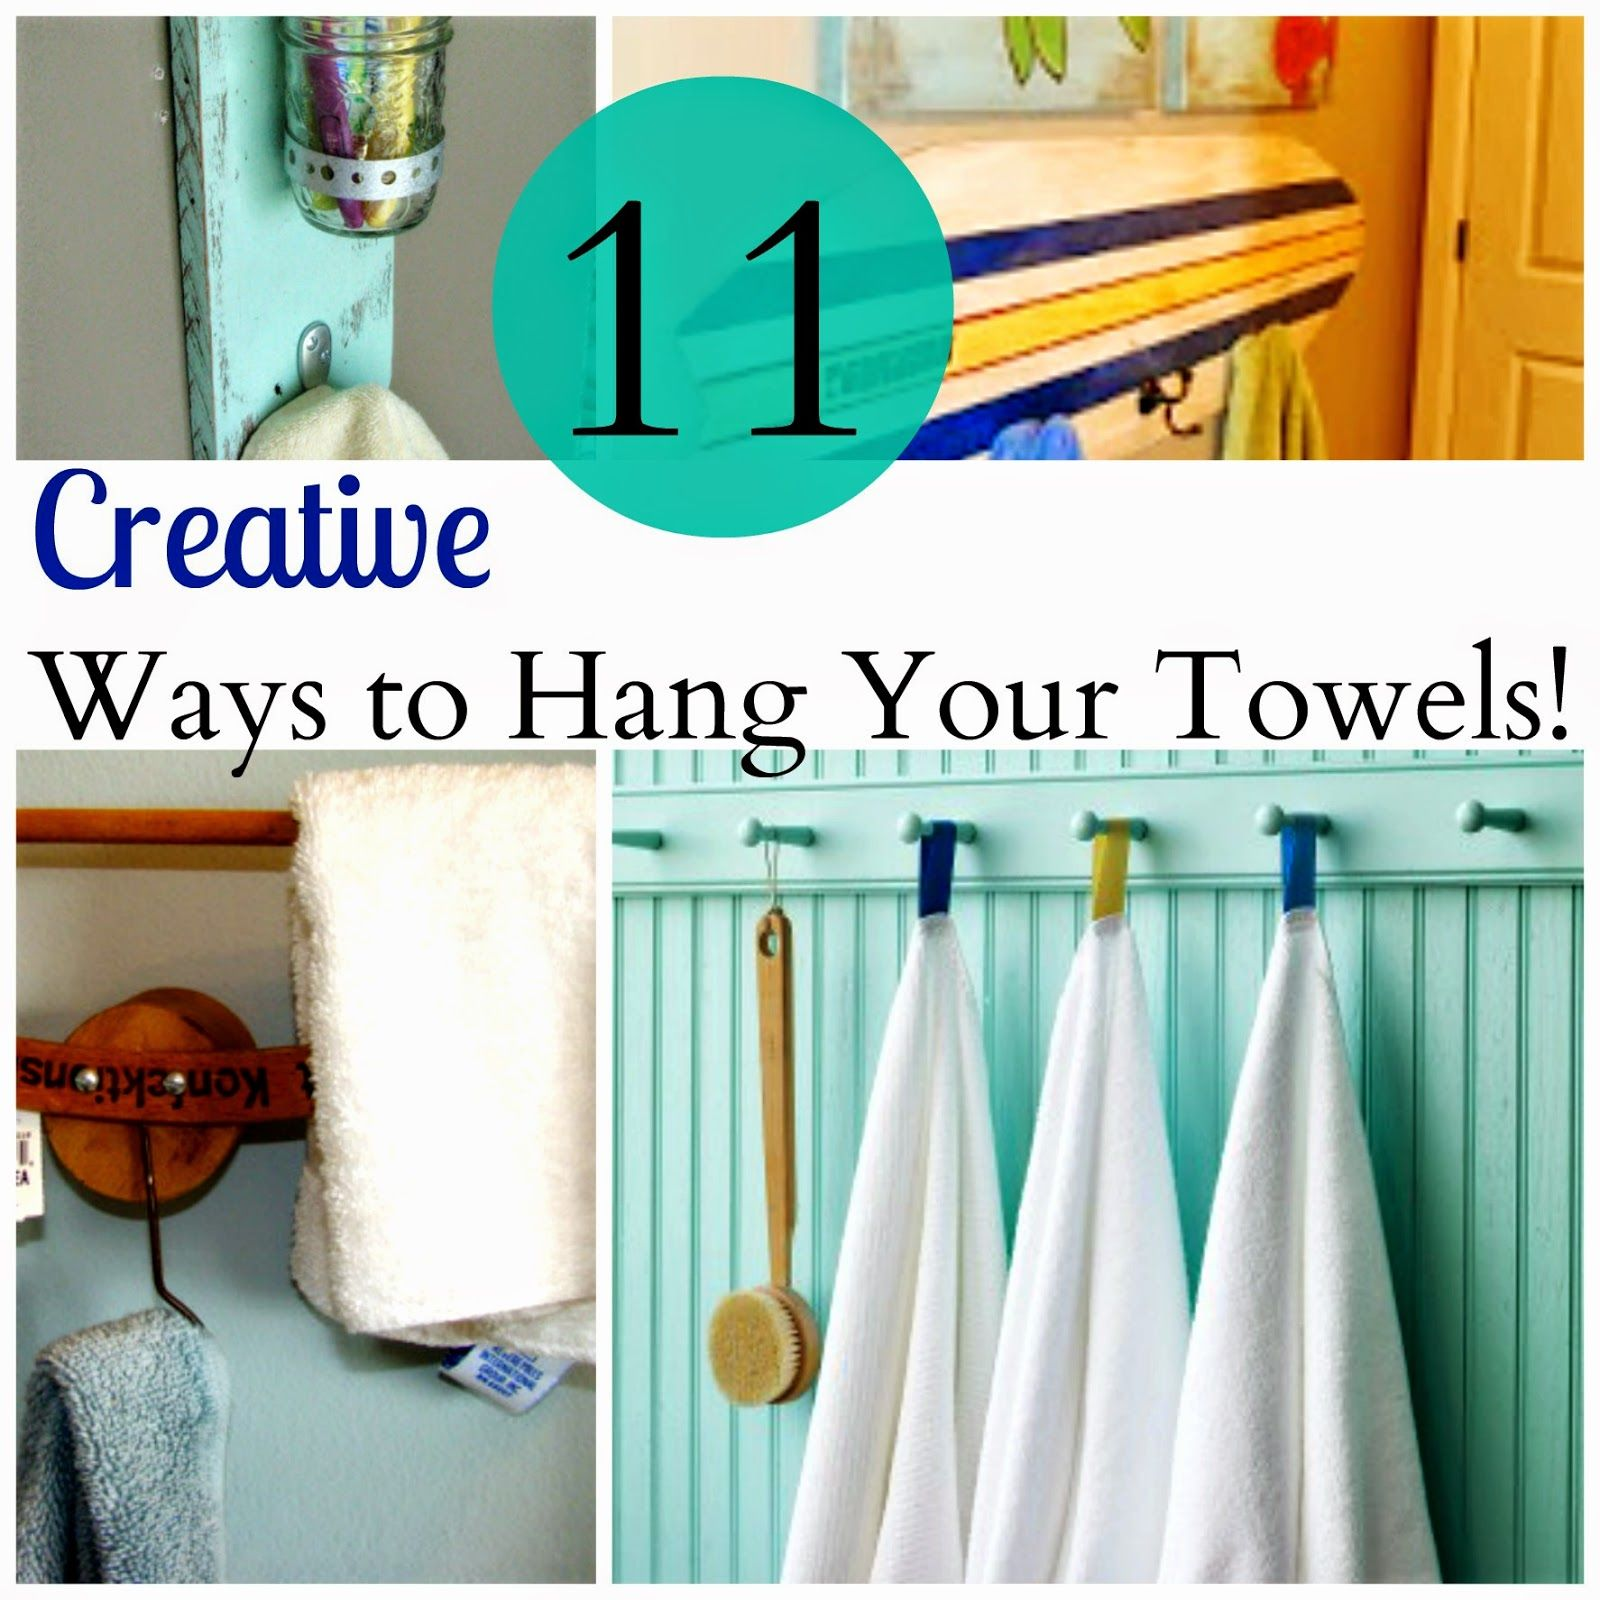 House Revivals: 11 Creative Ways to Hang Your Towels | Recycle ...